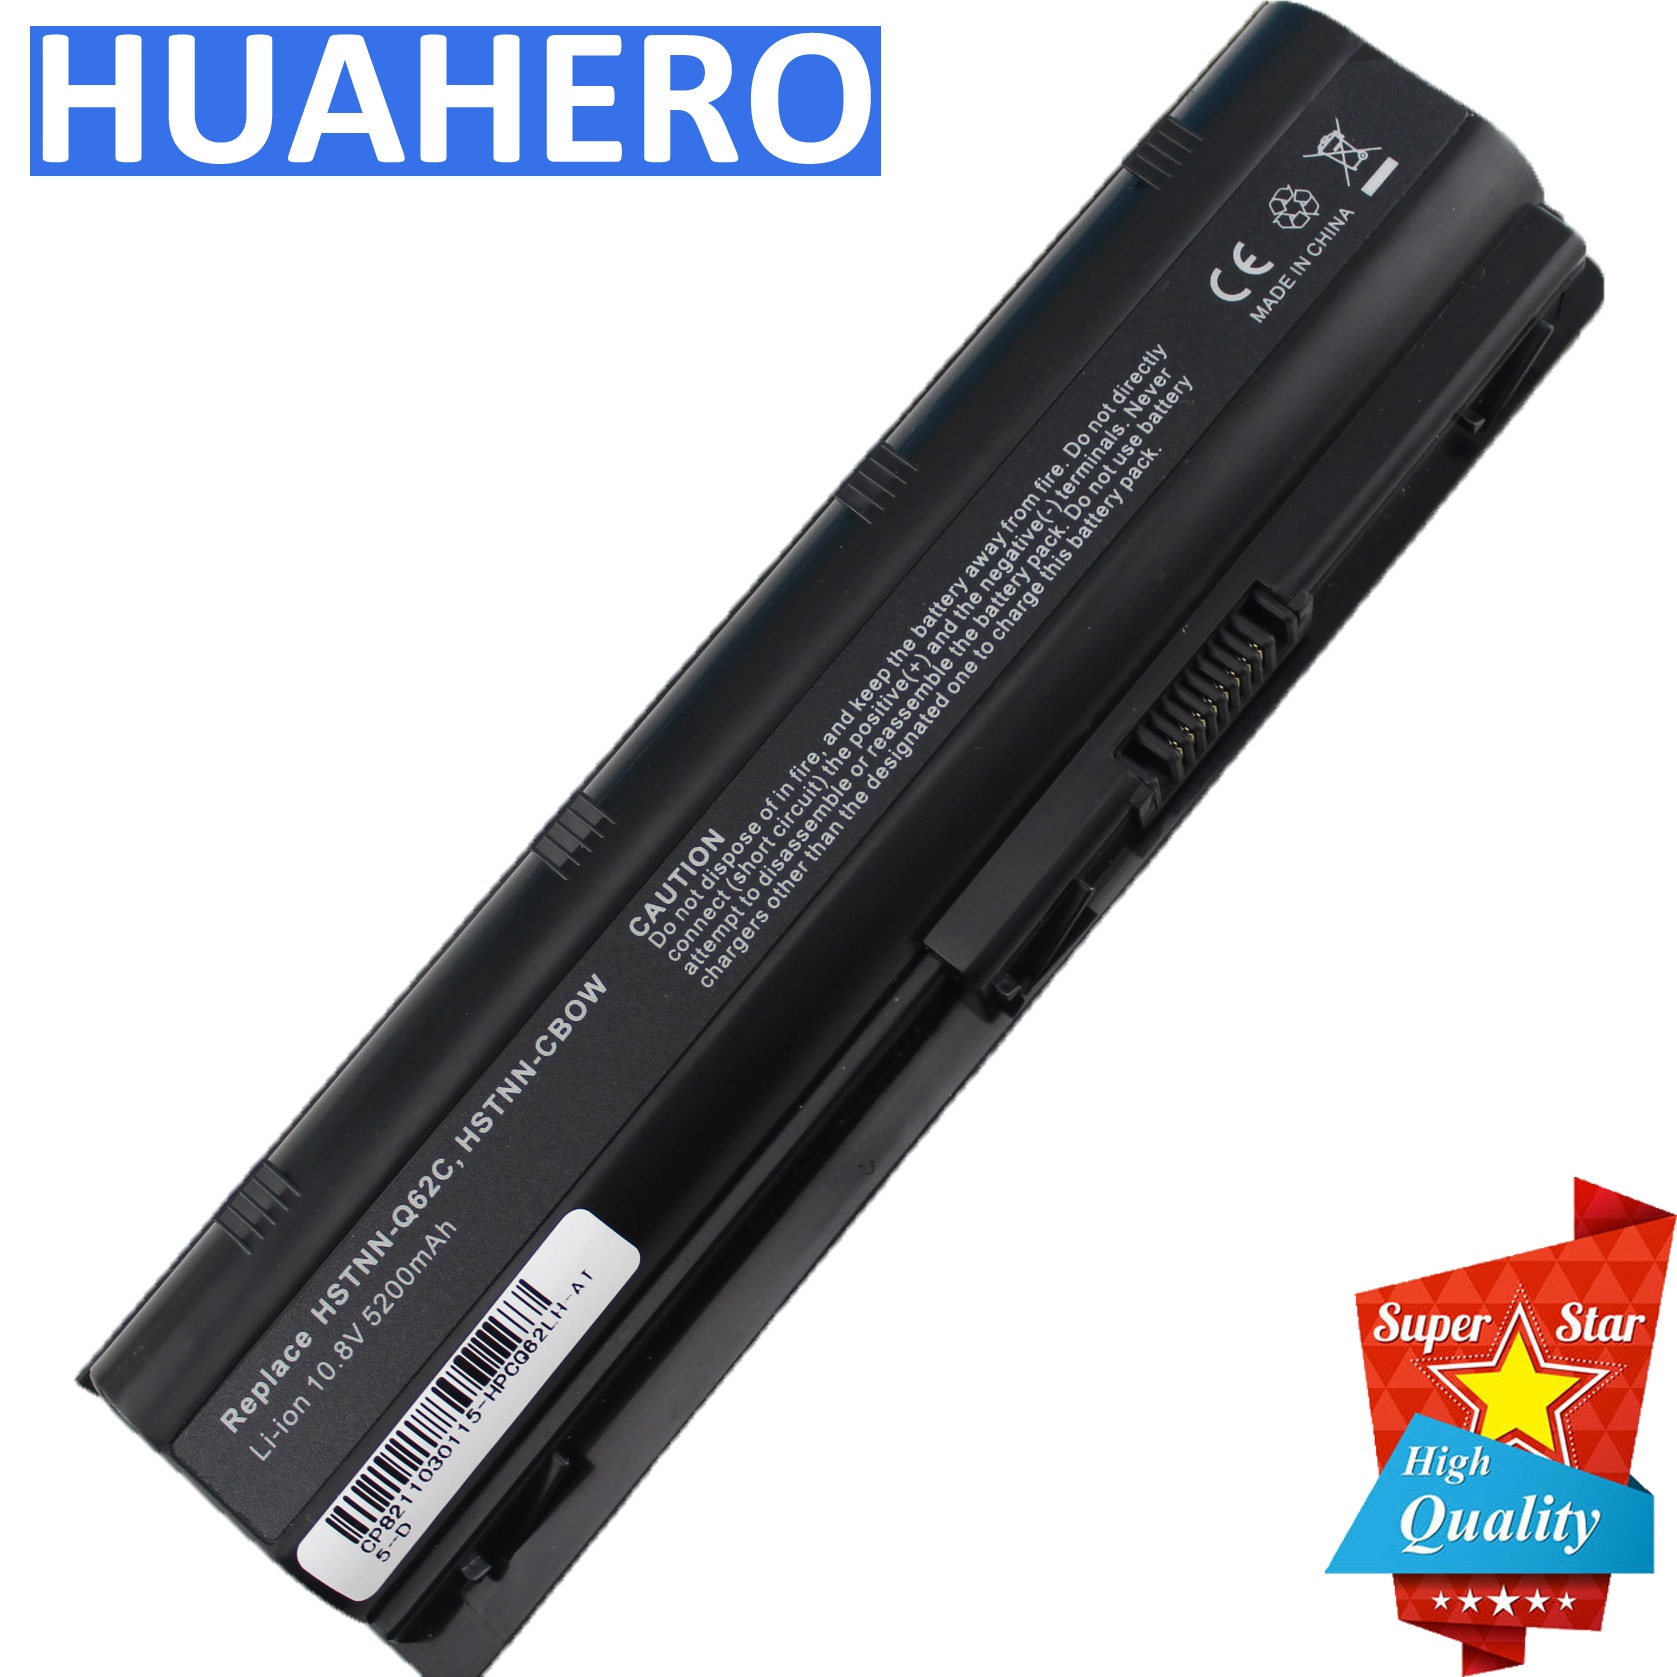 MU06 593553-001 Battery for HP 2000-425NR Notebook CQ32 CQ42 CQ56 CQ62 CQ72 G32 G42 G56 G62 DM4 G72 Laptop CQ43 MU09 593554-001 znovay mu06 laptop battery for hp pavilion g4 g6 g7 cq42 cq32 g42 cq43 cq62 g32 dv6 dm4 g72 593562 001battery mu09 10 8v 47wh